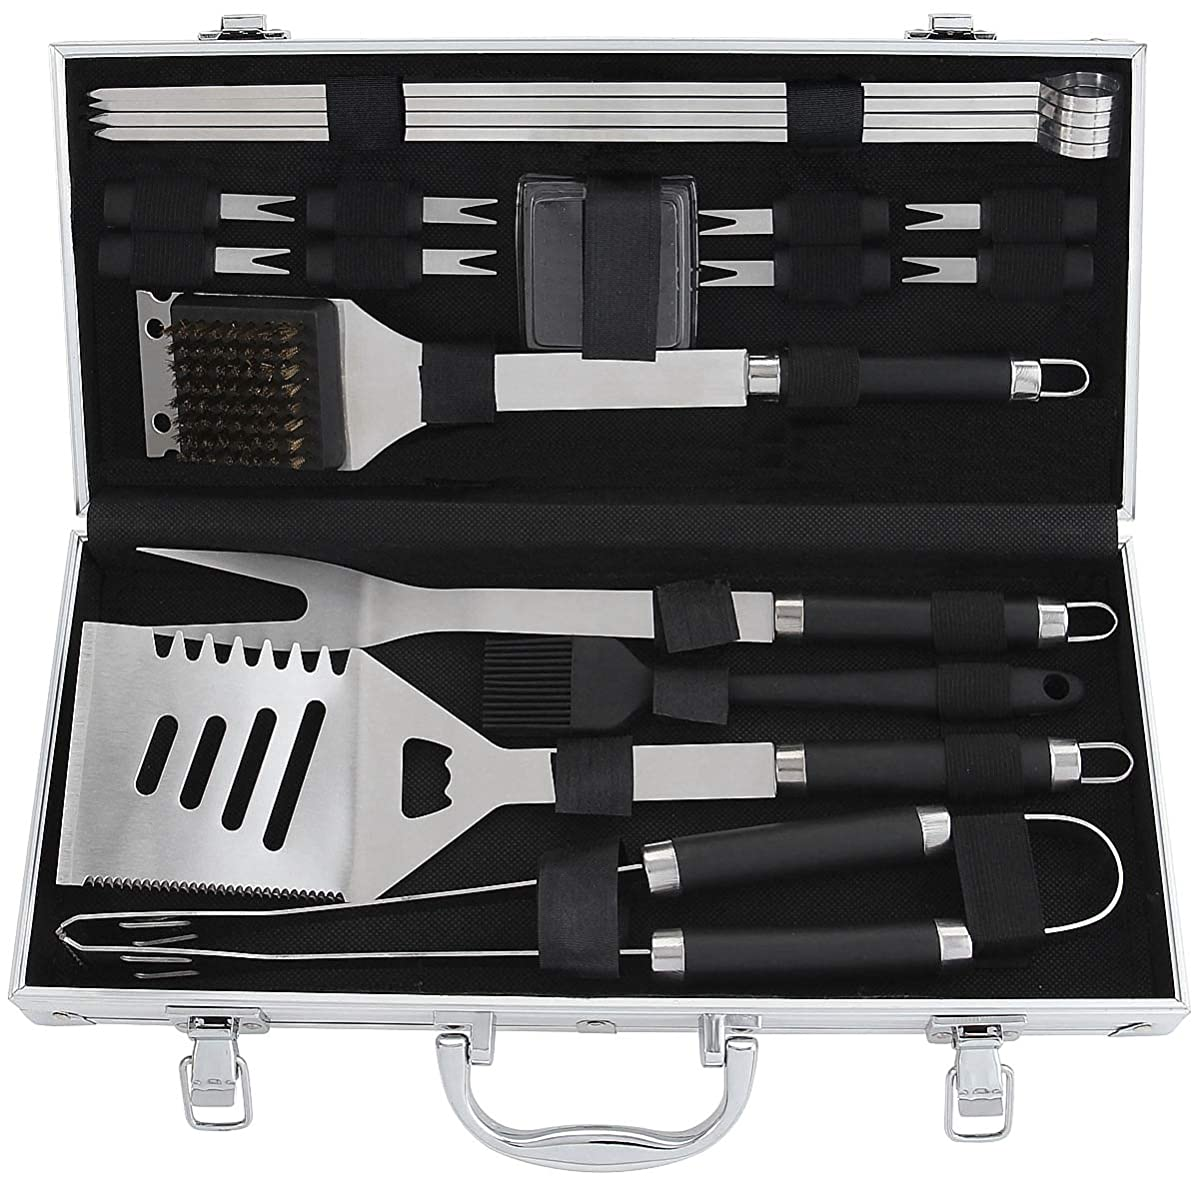 POLIGO 19PCS BBQ Accessories Set Stainless Steel Barbecue Grilling Utensils Kit Set with Aluminum Case for Camping - Premium BBQ Grill Tools Kit - Ideal BBQ Gifts Set for birthday Father's Day Dad Men